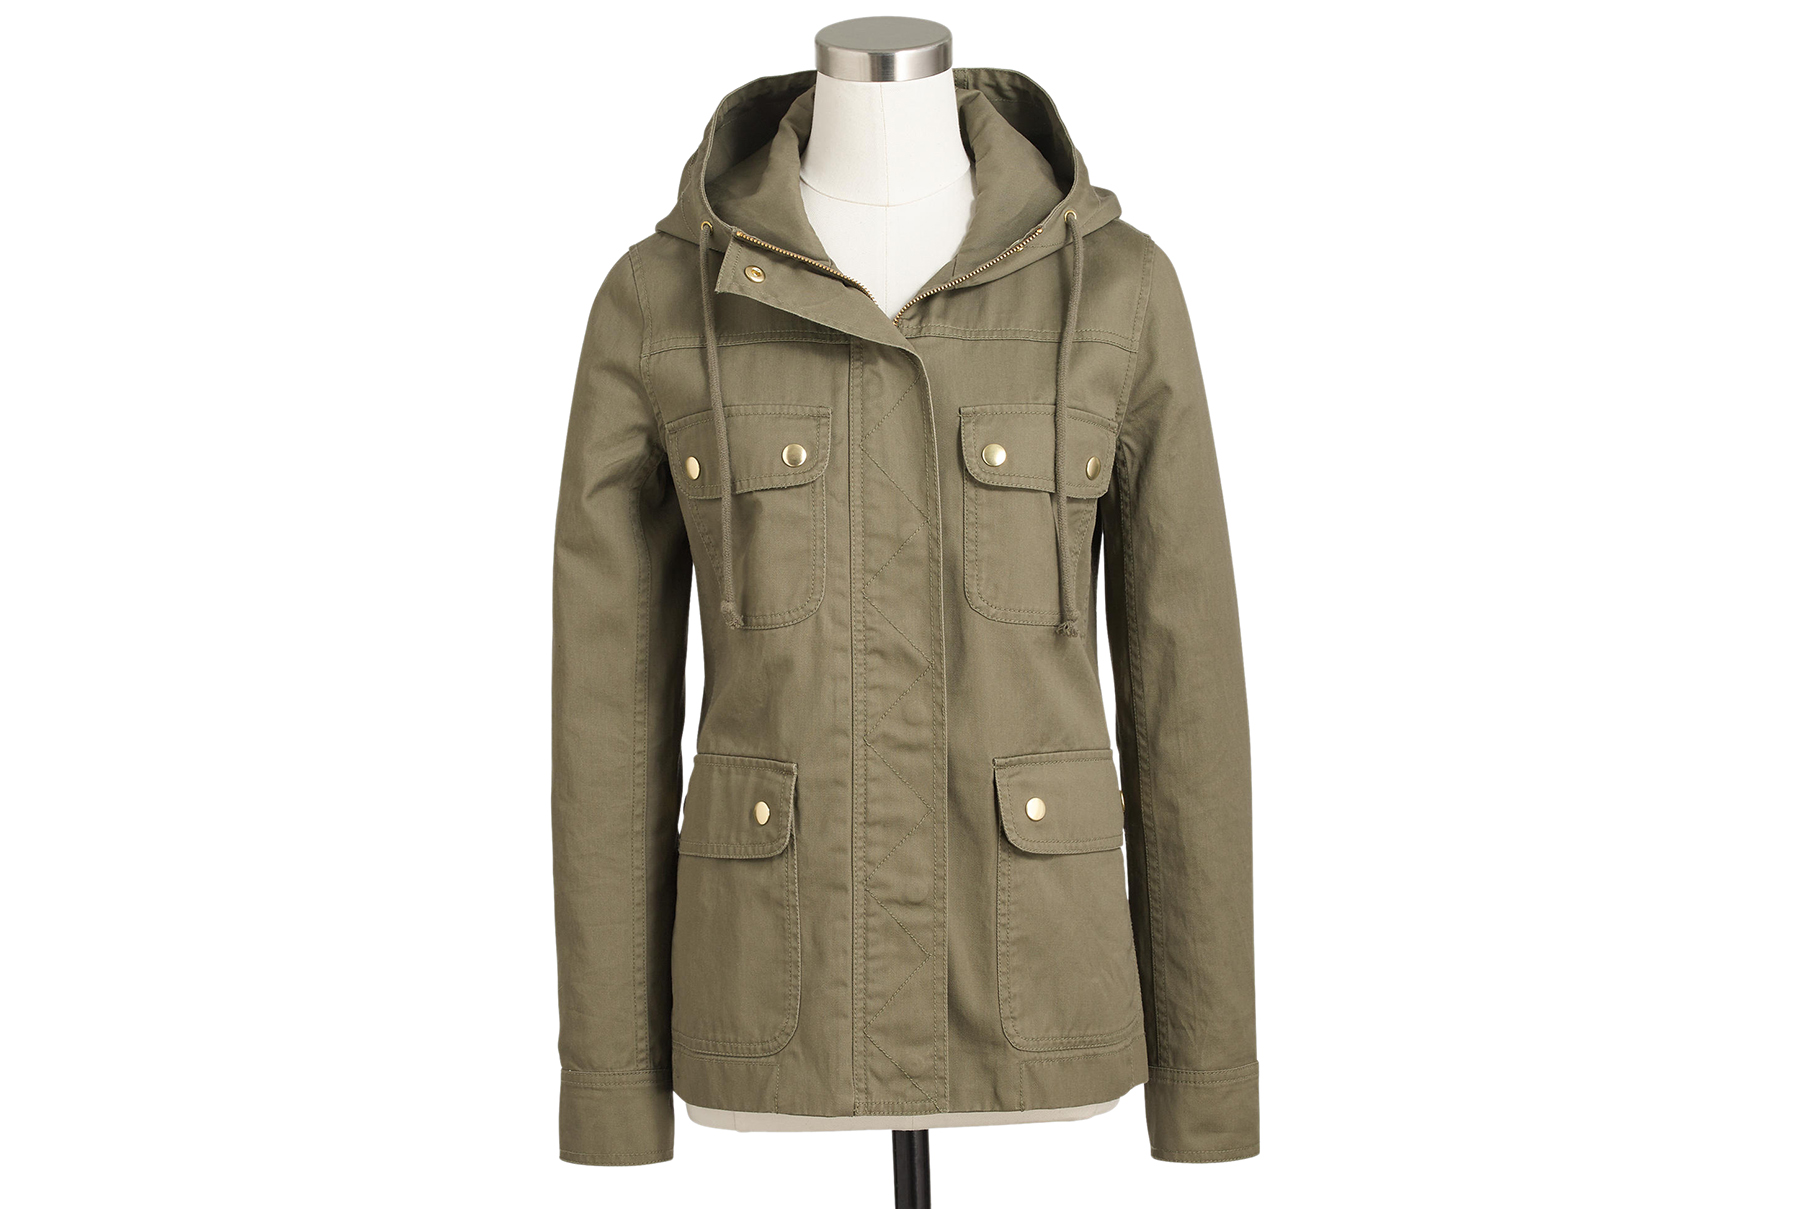 Resin-Coated Twill Jacket With Hood